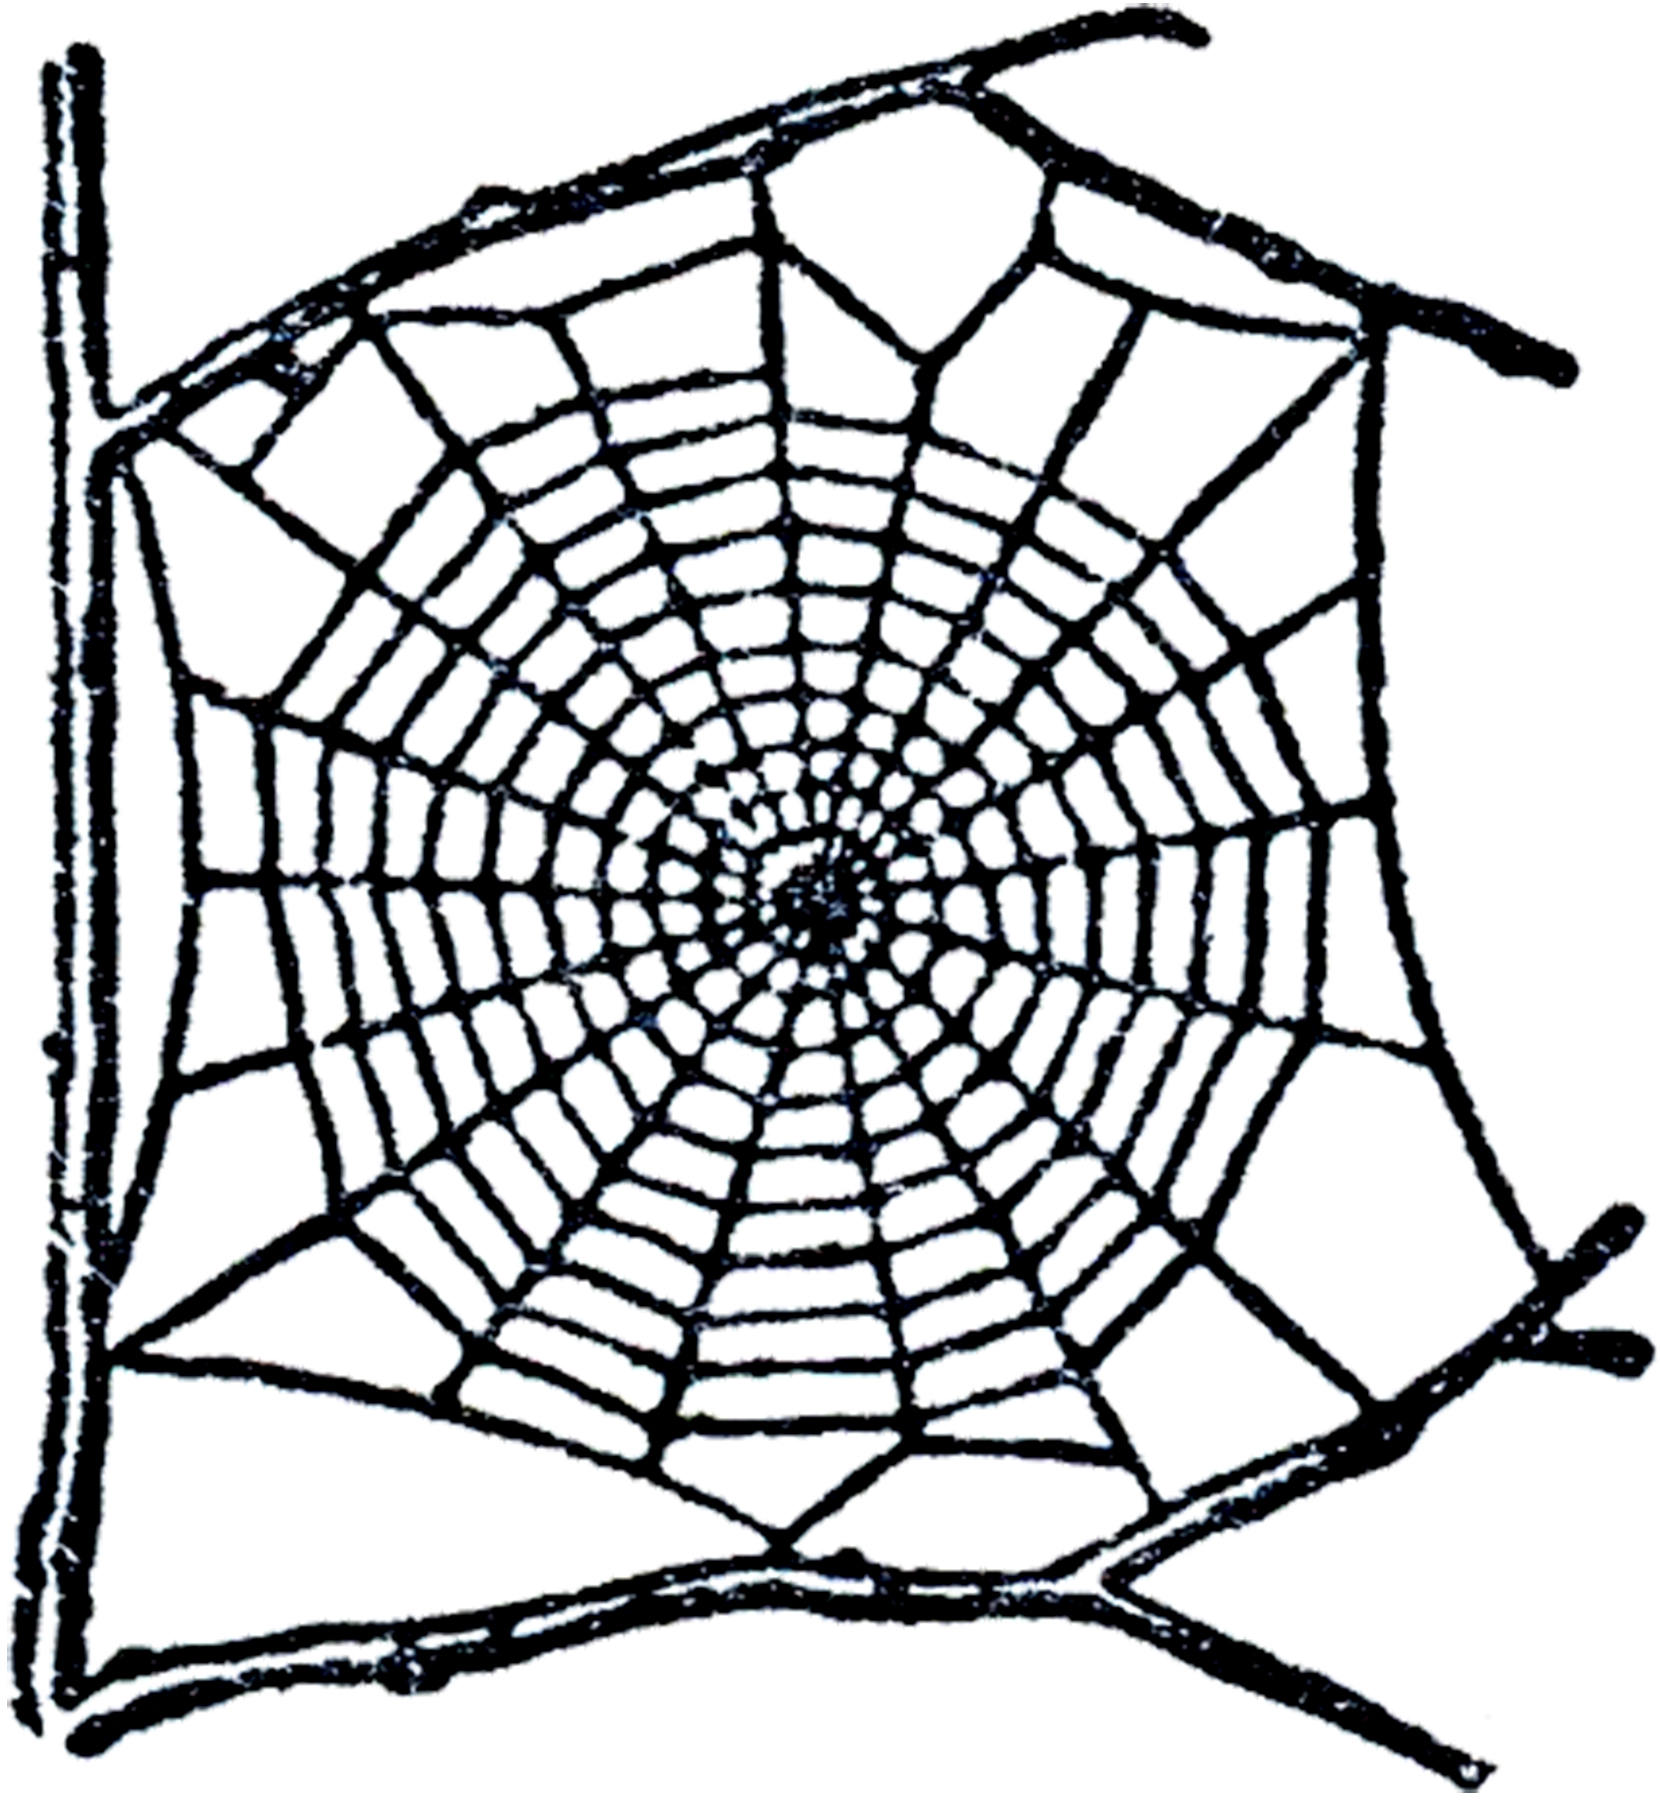 Spider web border clipart free images 4 4